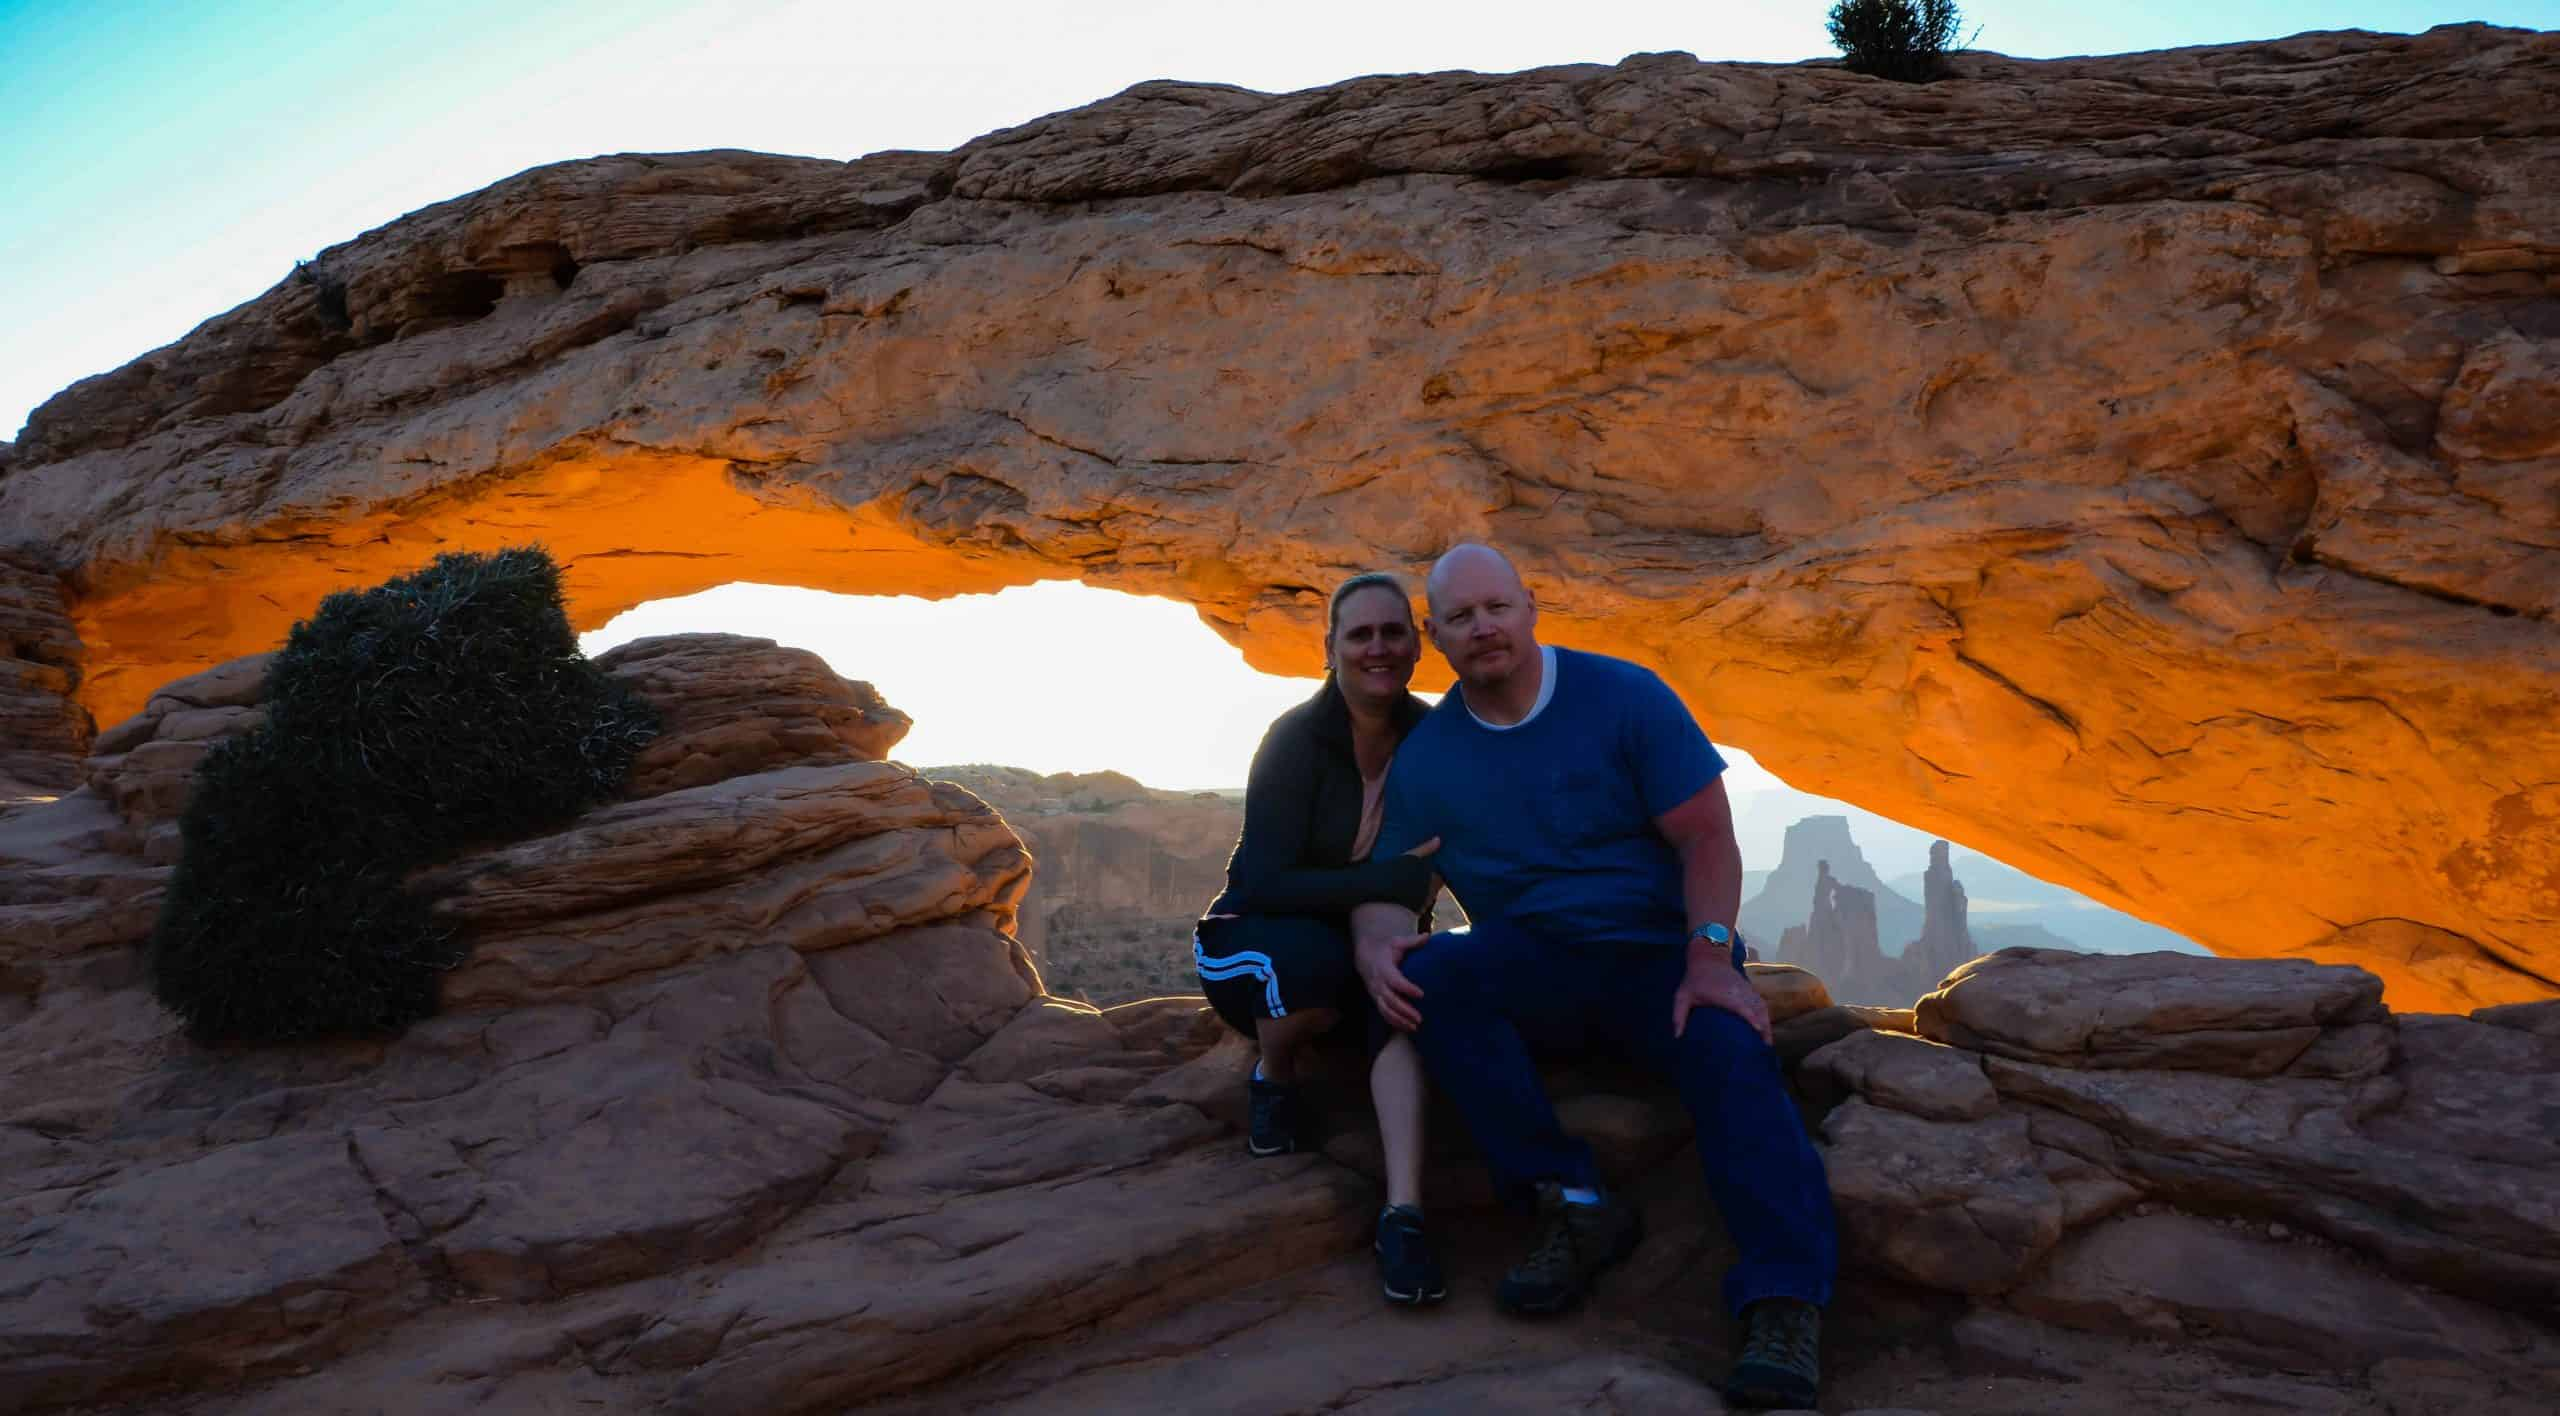 Dave and Jamie at Mesa Arch, Canyonlands